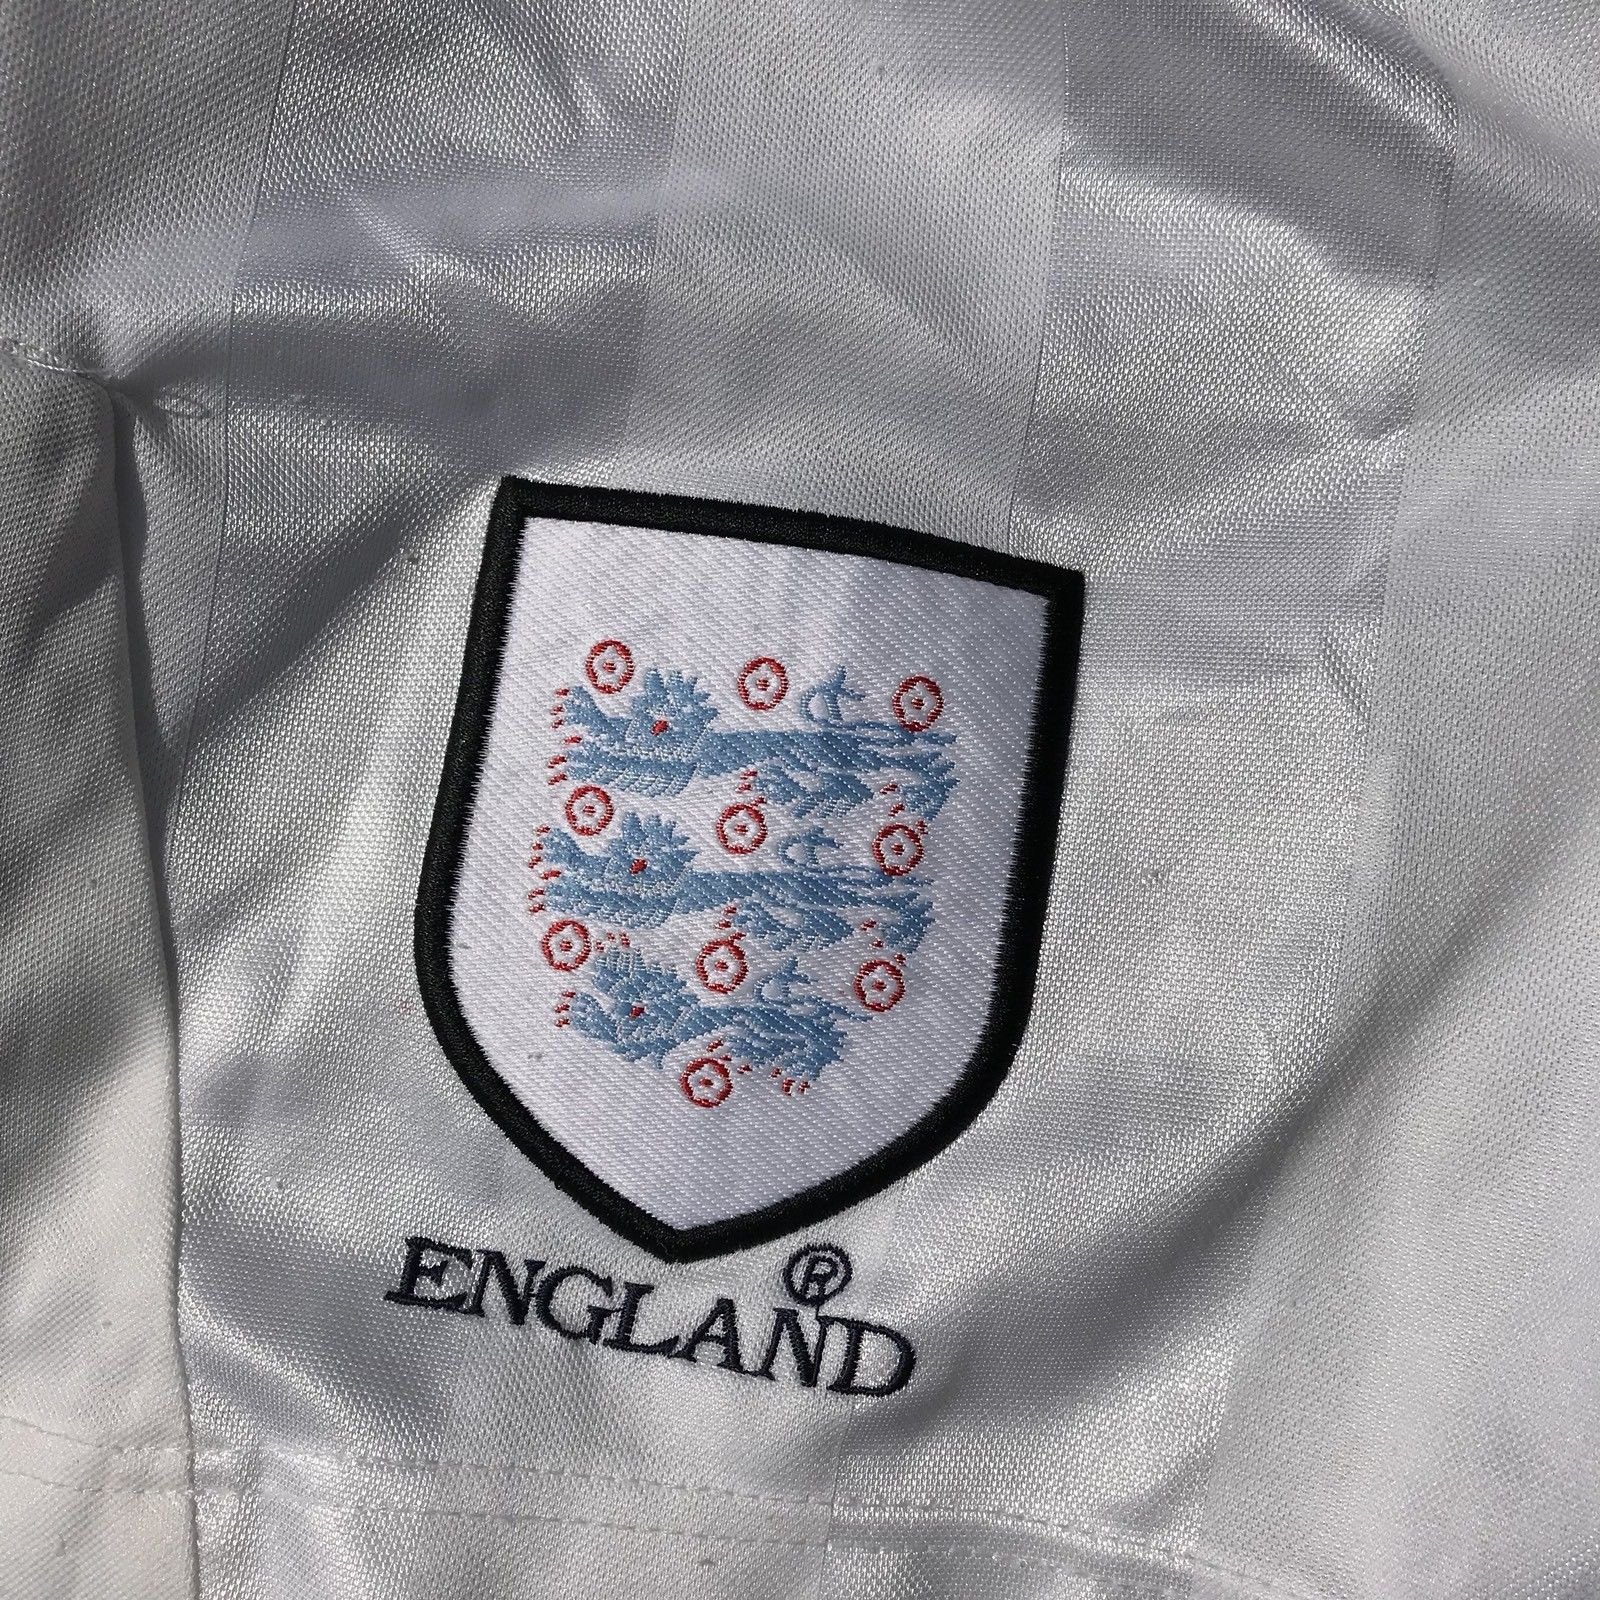 50a762af134 England 199799 Umbro Boys Shorts Football Shirt Large Children's amp;  CwHZBCq